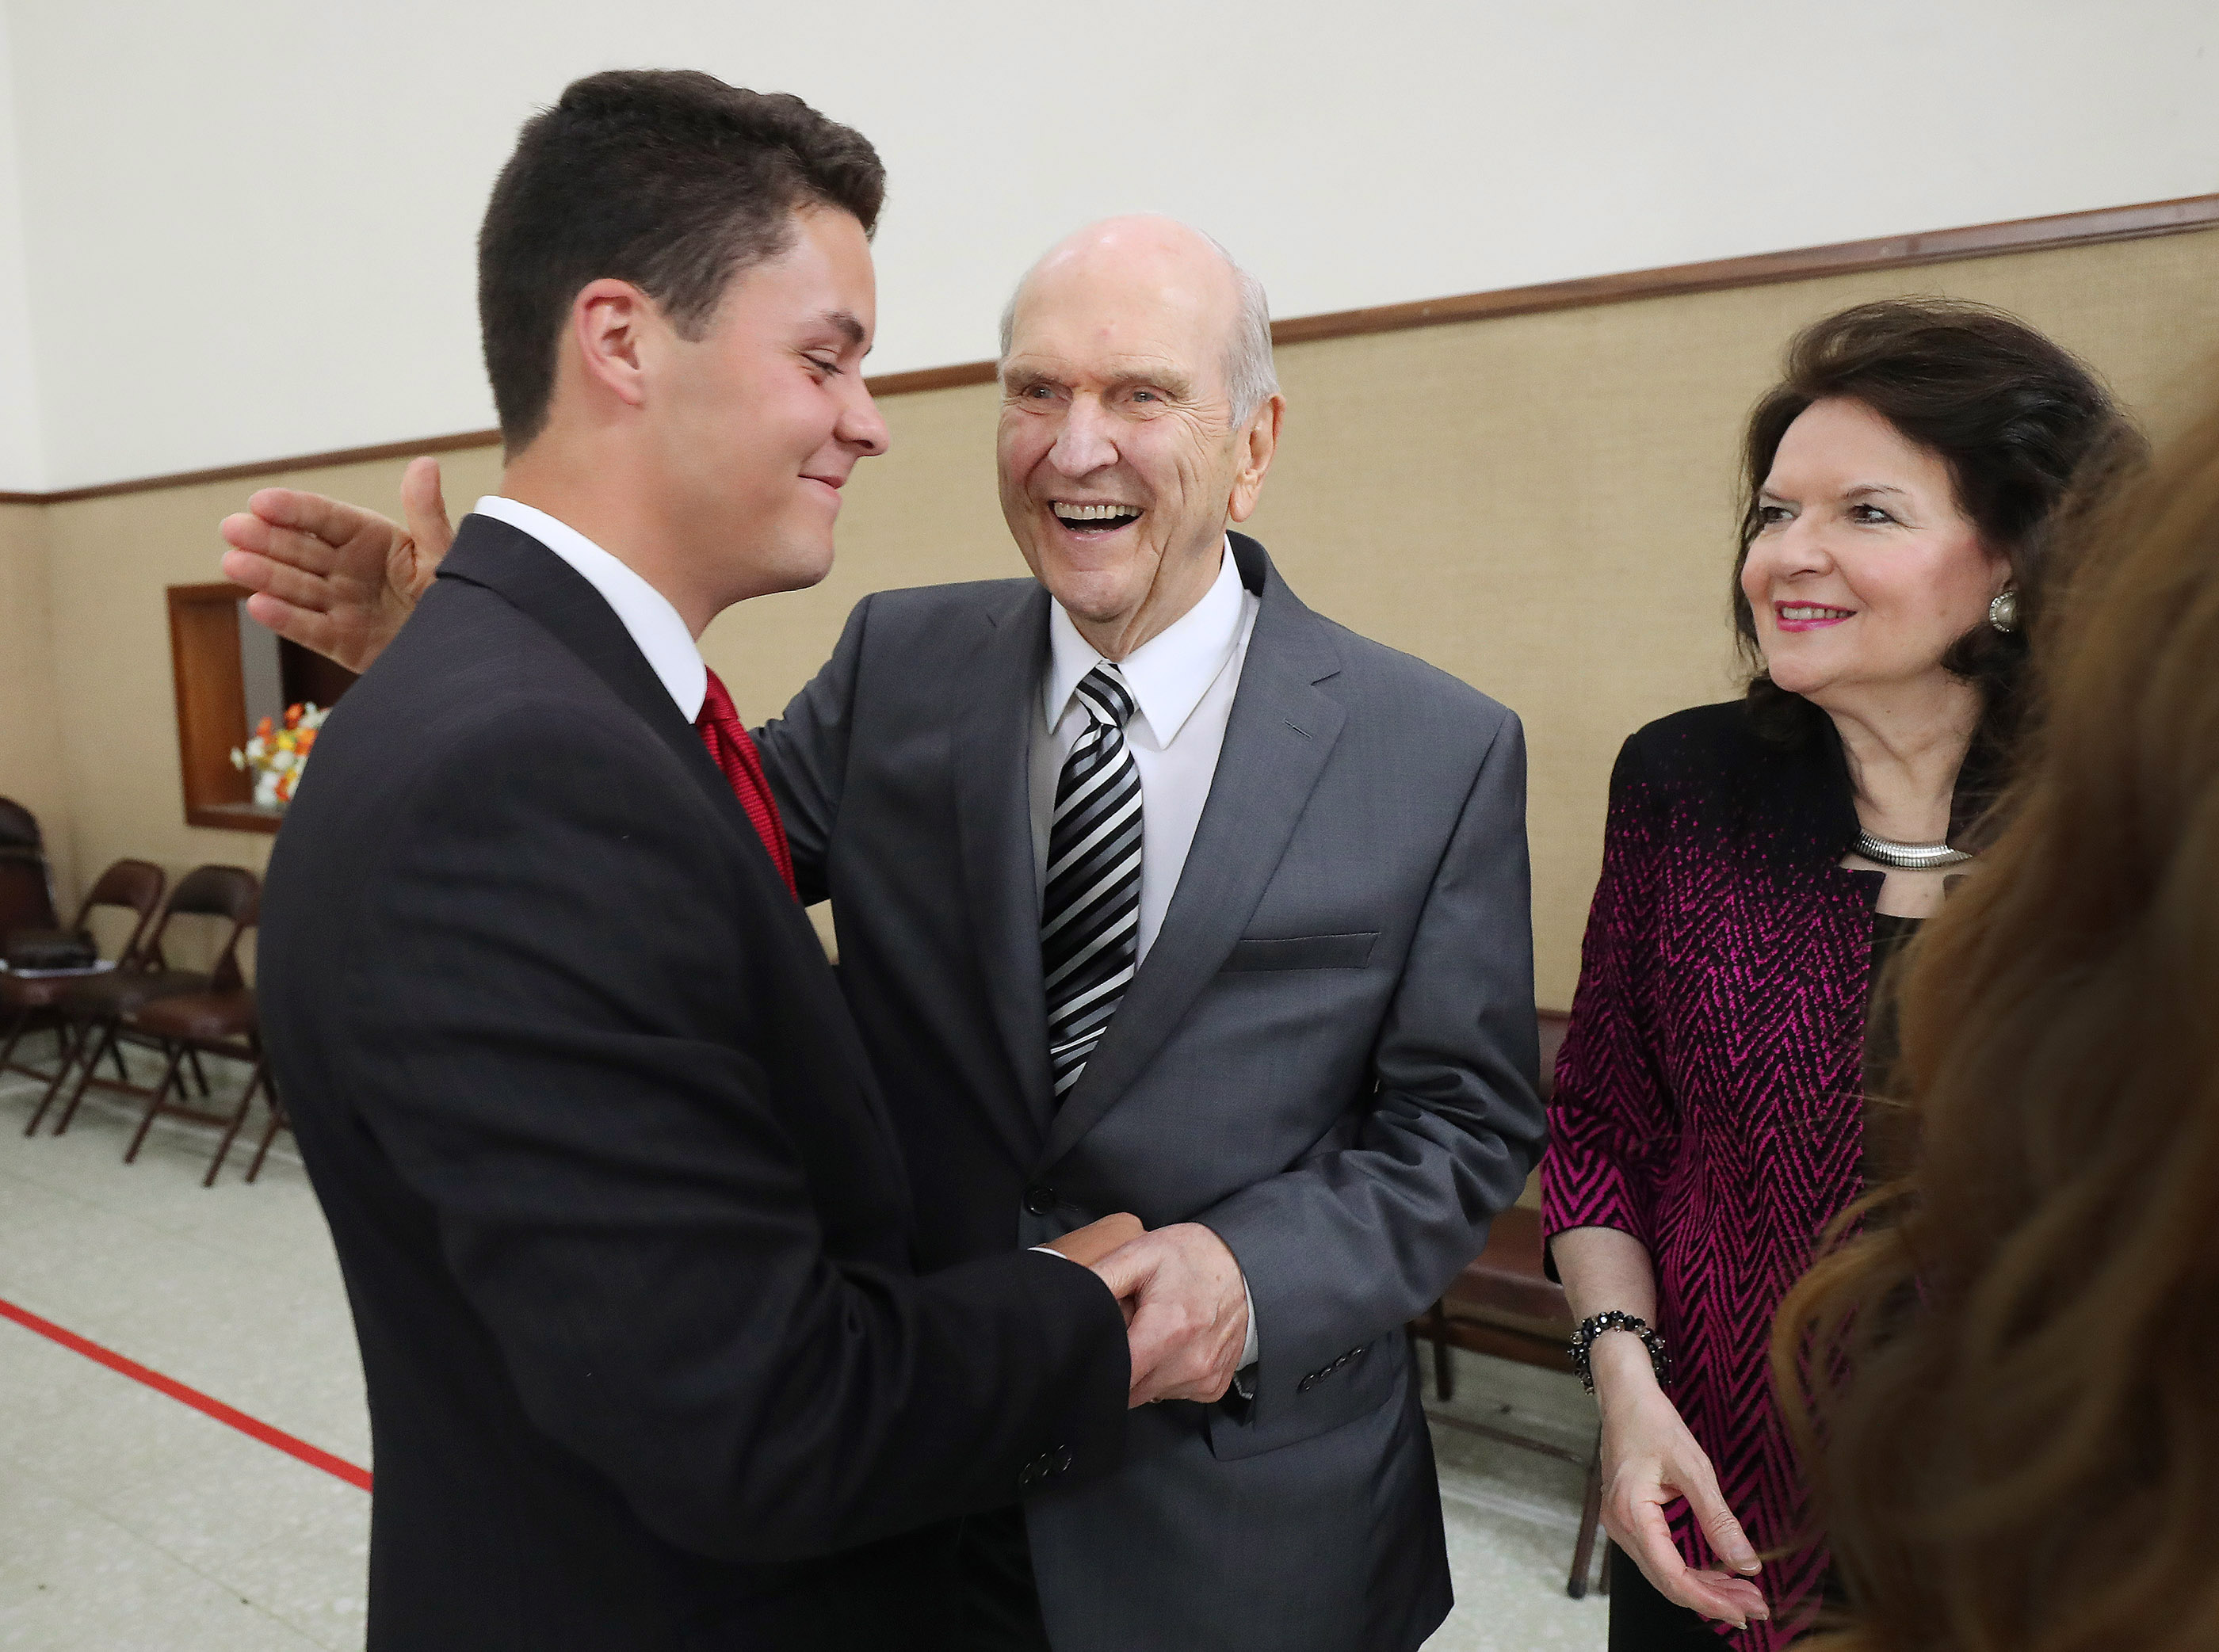 President Russell M. Nelson of The Church of Jesus Christ of Latter-day Saints, and his wife, Sister Wendy Nelson, greet their grandson Elder Nicholas Nelson, a missionary serving in the Uruguay Montevideo West Mission, prior to a missionary meeting in Montevideo, Uruguay, on Thursday, Oct. 25, 2018.